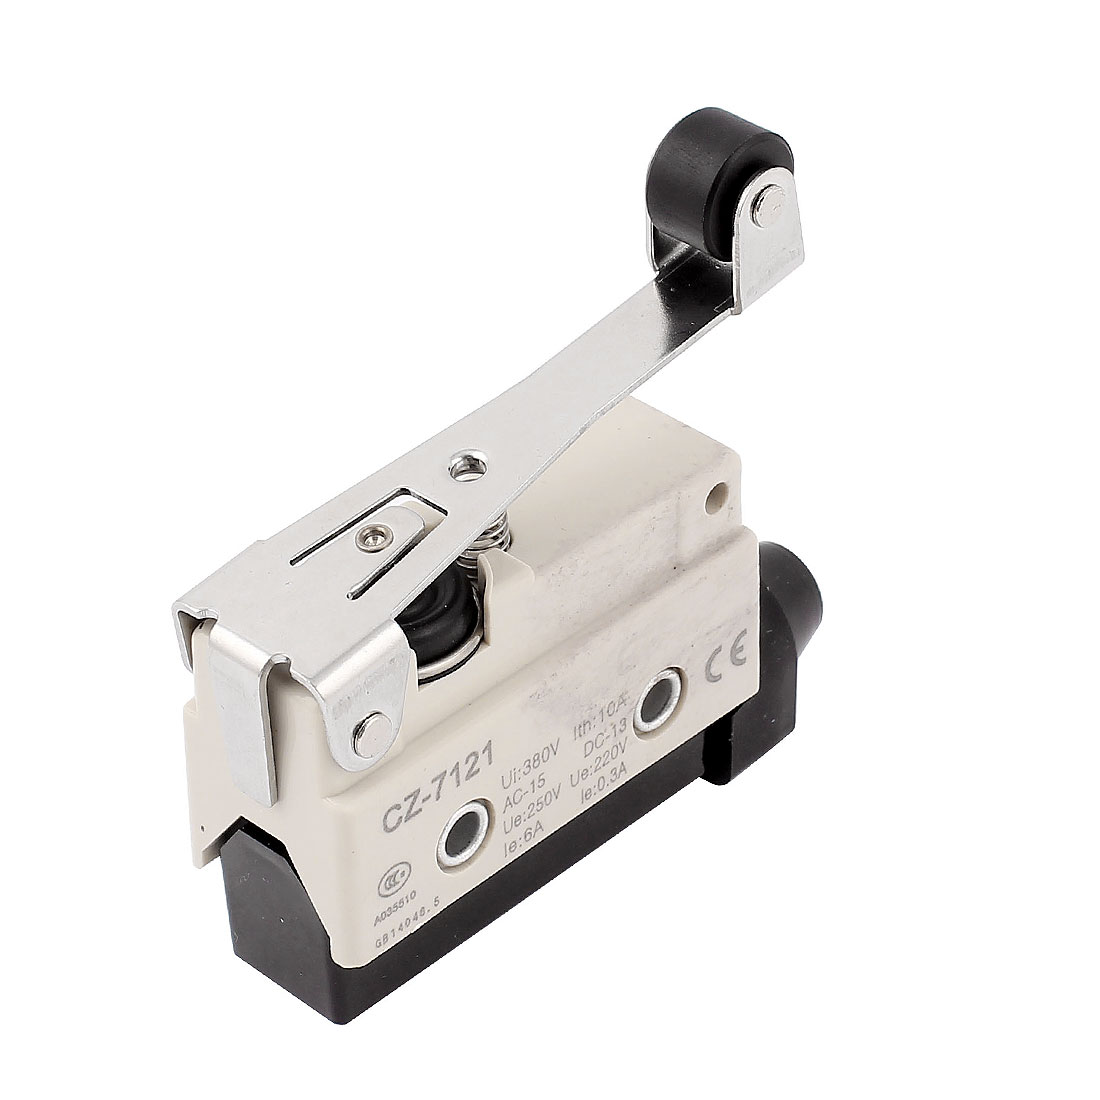 CZ-7121 SPDT Momentary Short Roller Arm Micro Limit Switch Snap Action